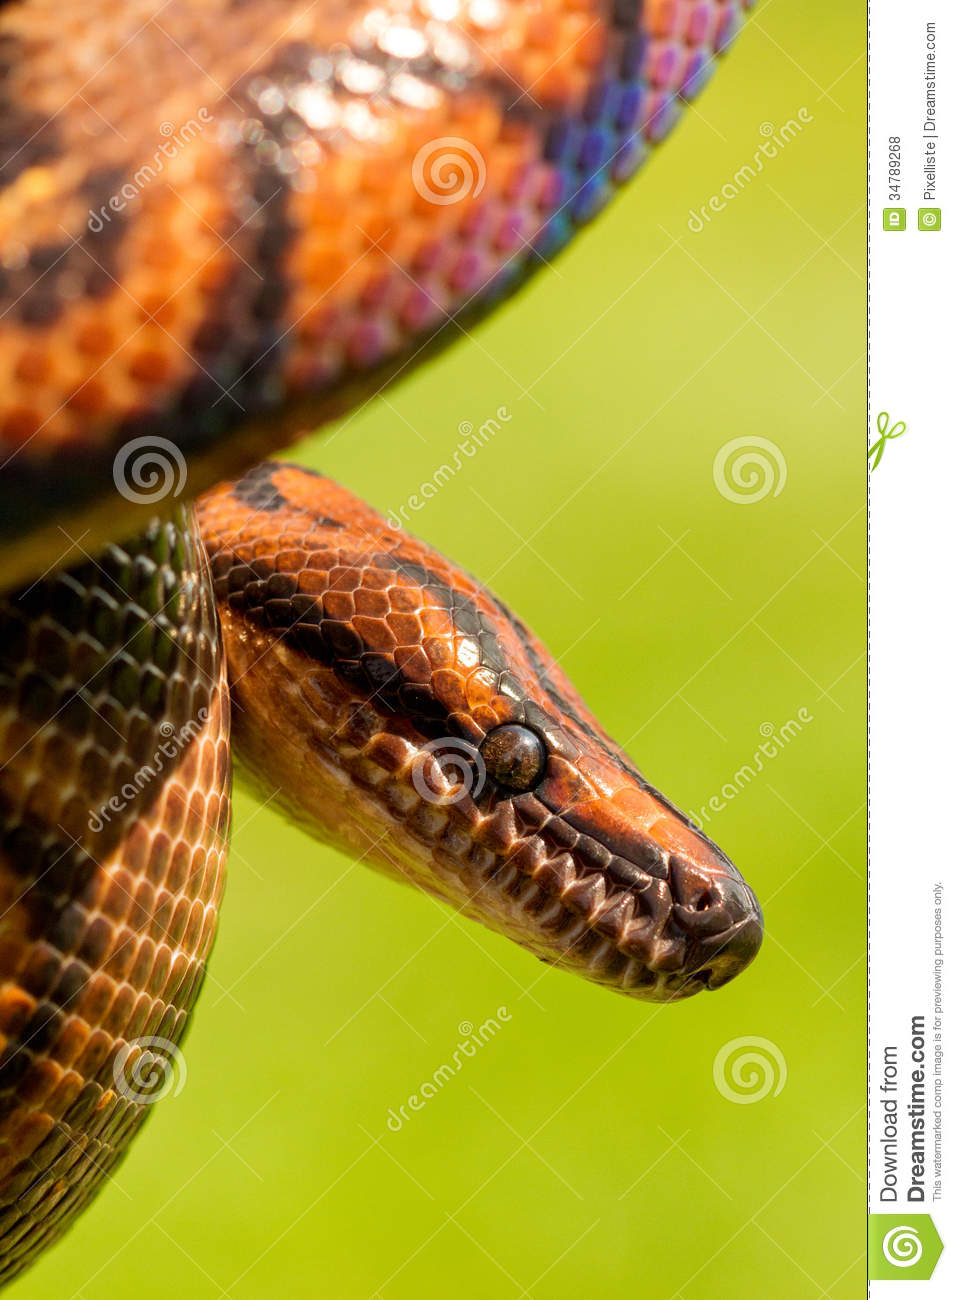 Brazilian Rainbow Boa Snake on a green background Brazilian Rainbow Snake